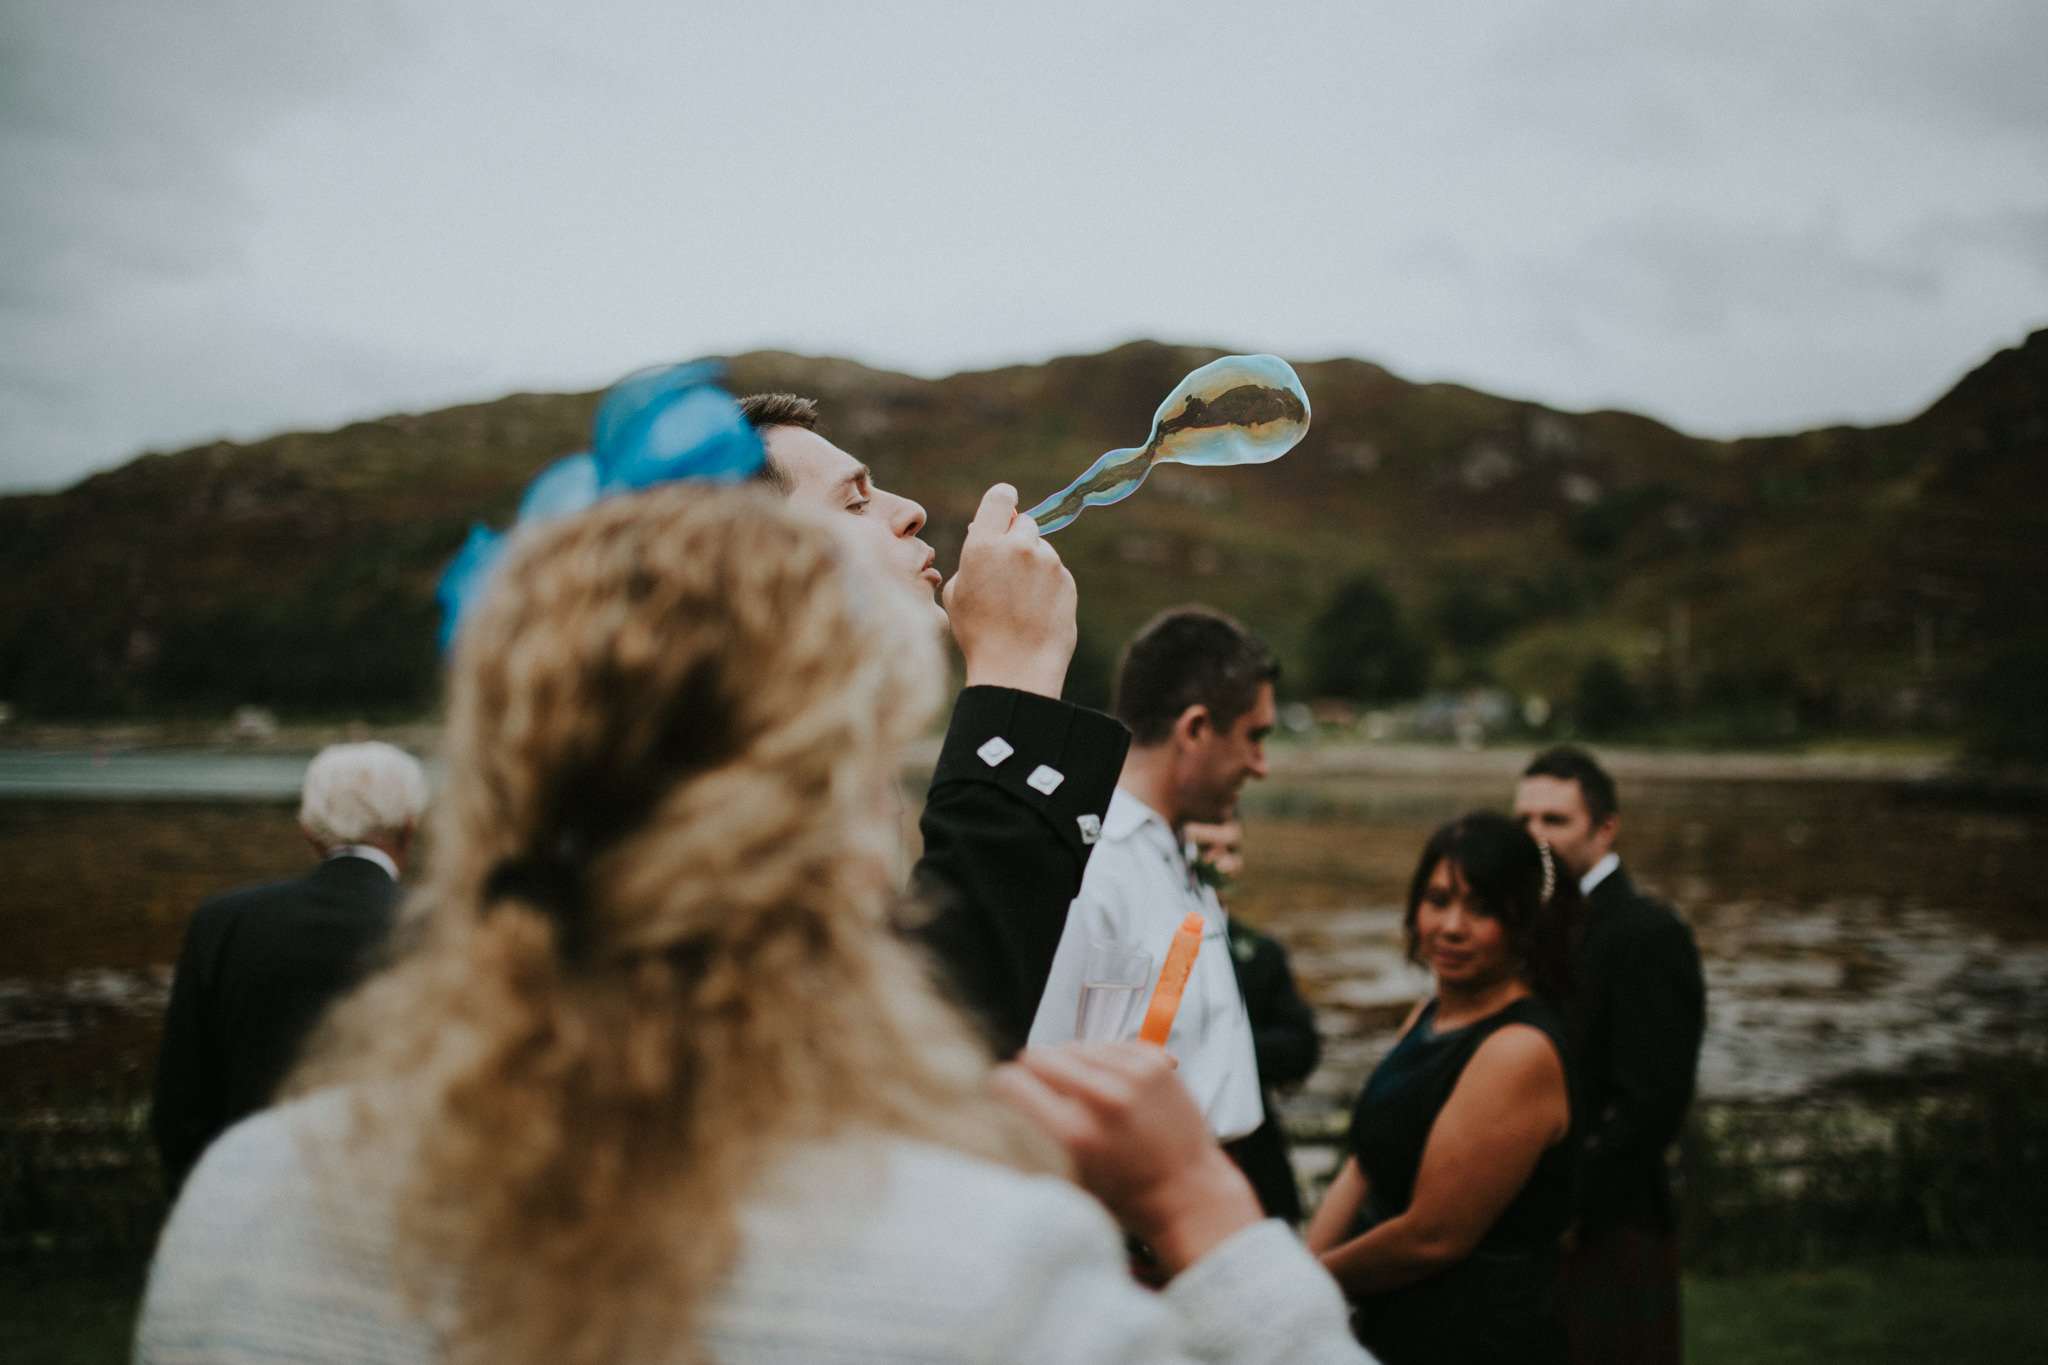 A wedding guest is blowing a soap bubble.